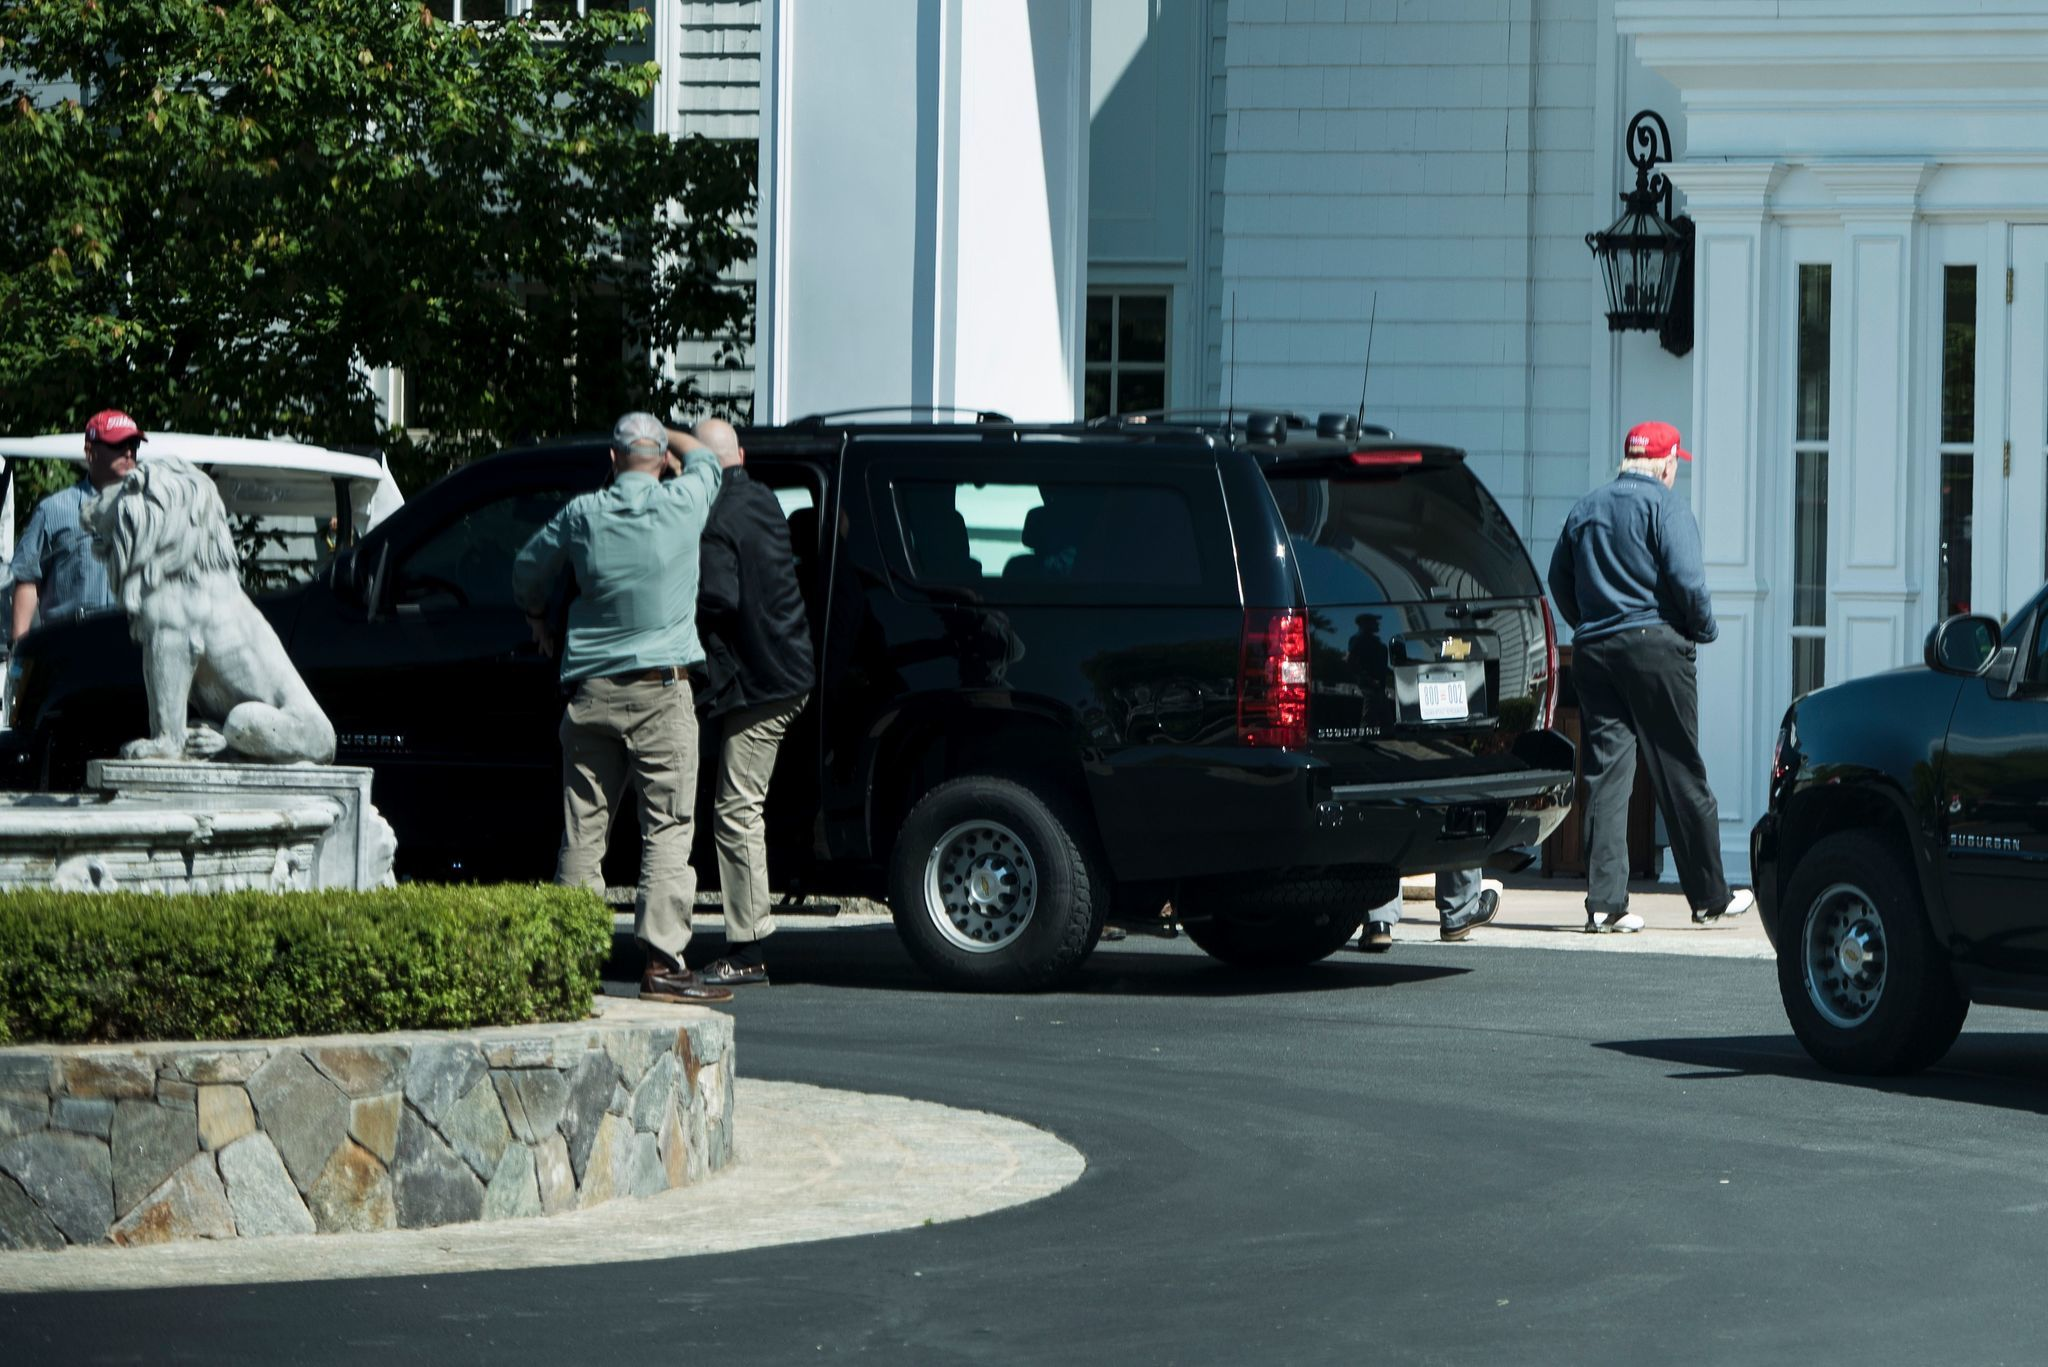 President Trump arrives at his Trump National Golf Club in Sterling, Va., on May 14, 2017. (Brendan Smialowski / AFP/Getty Images)